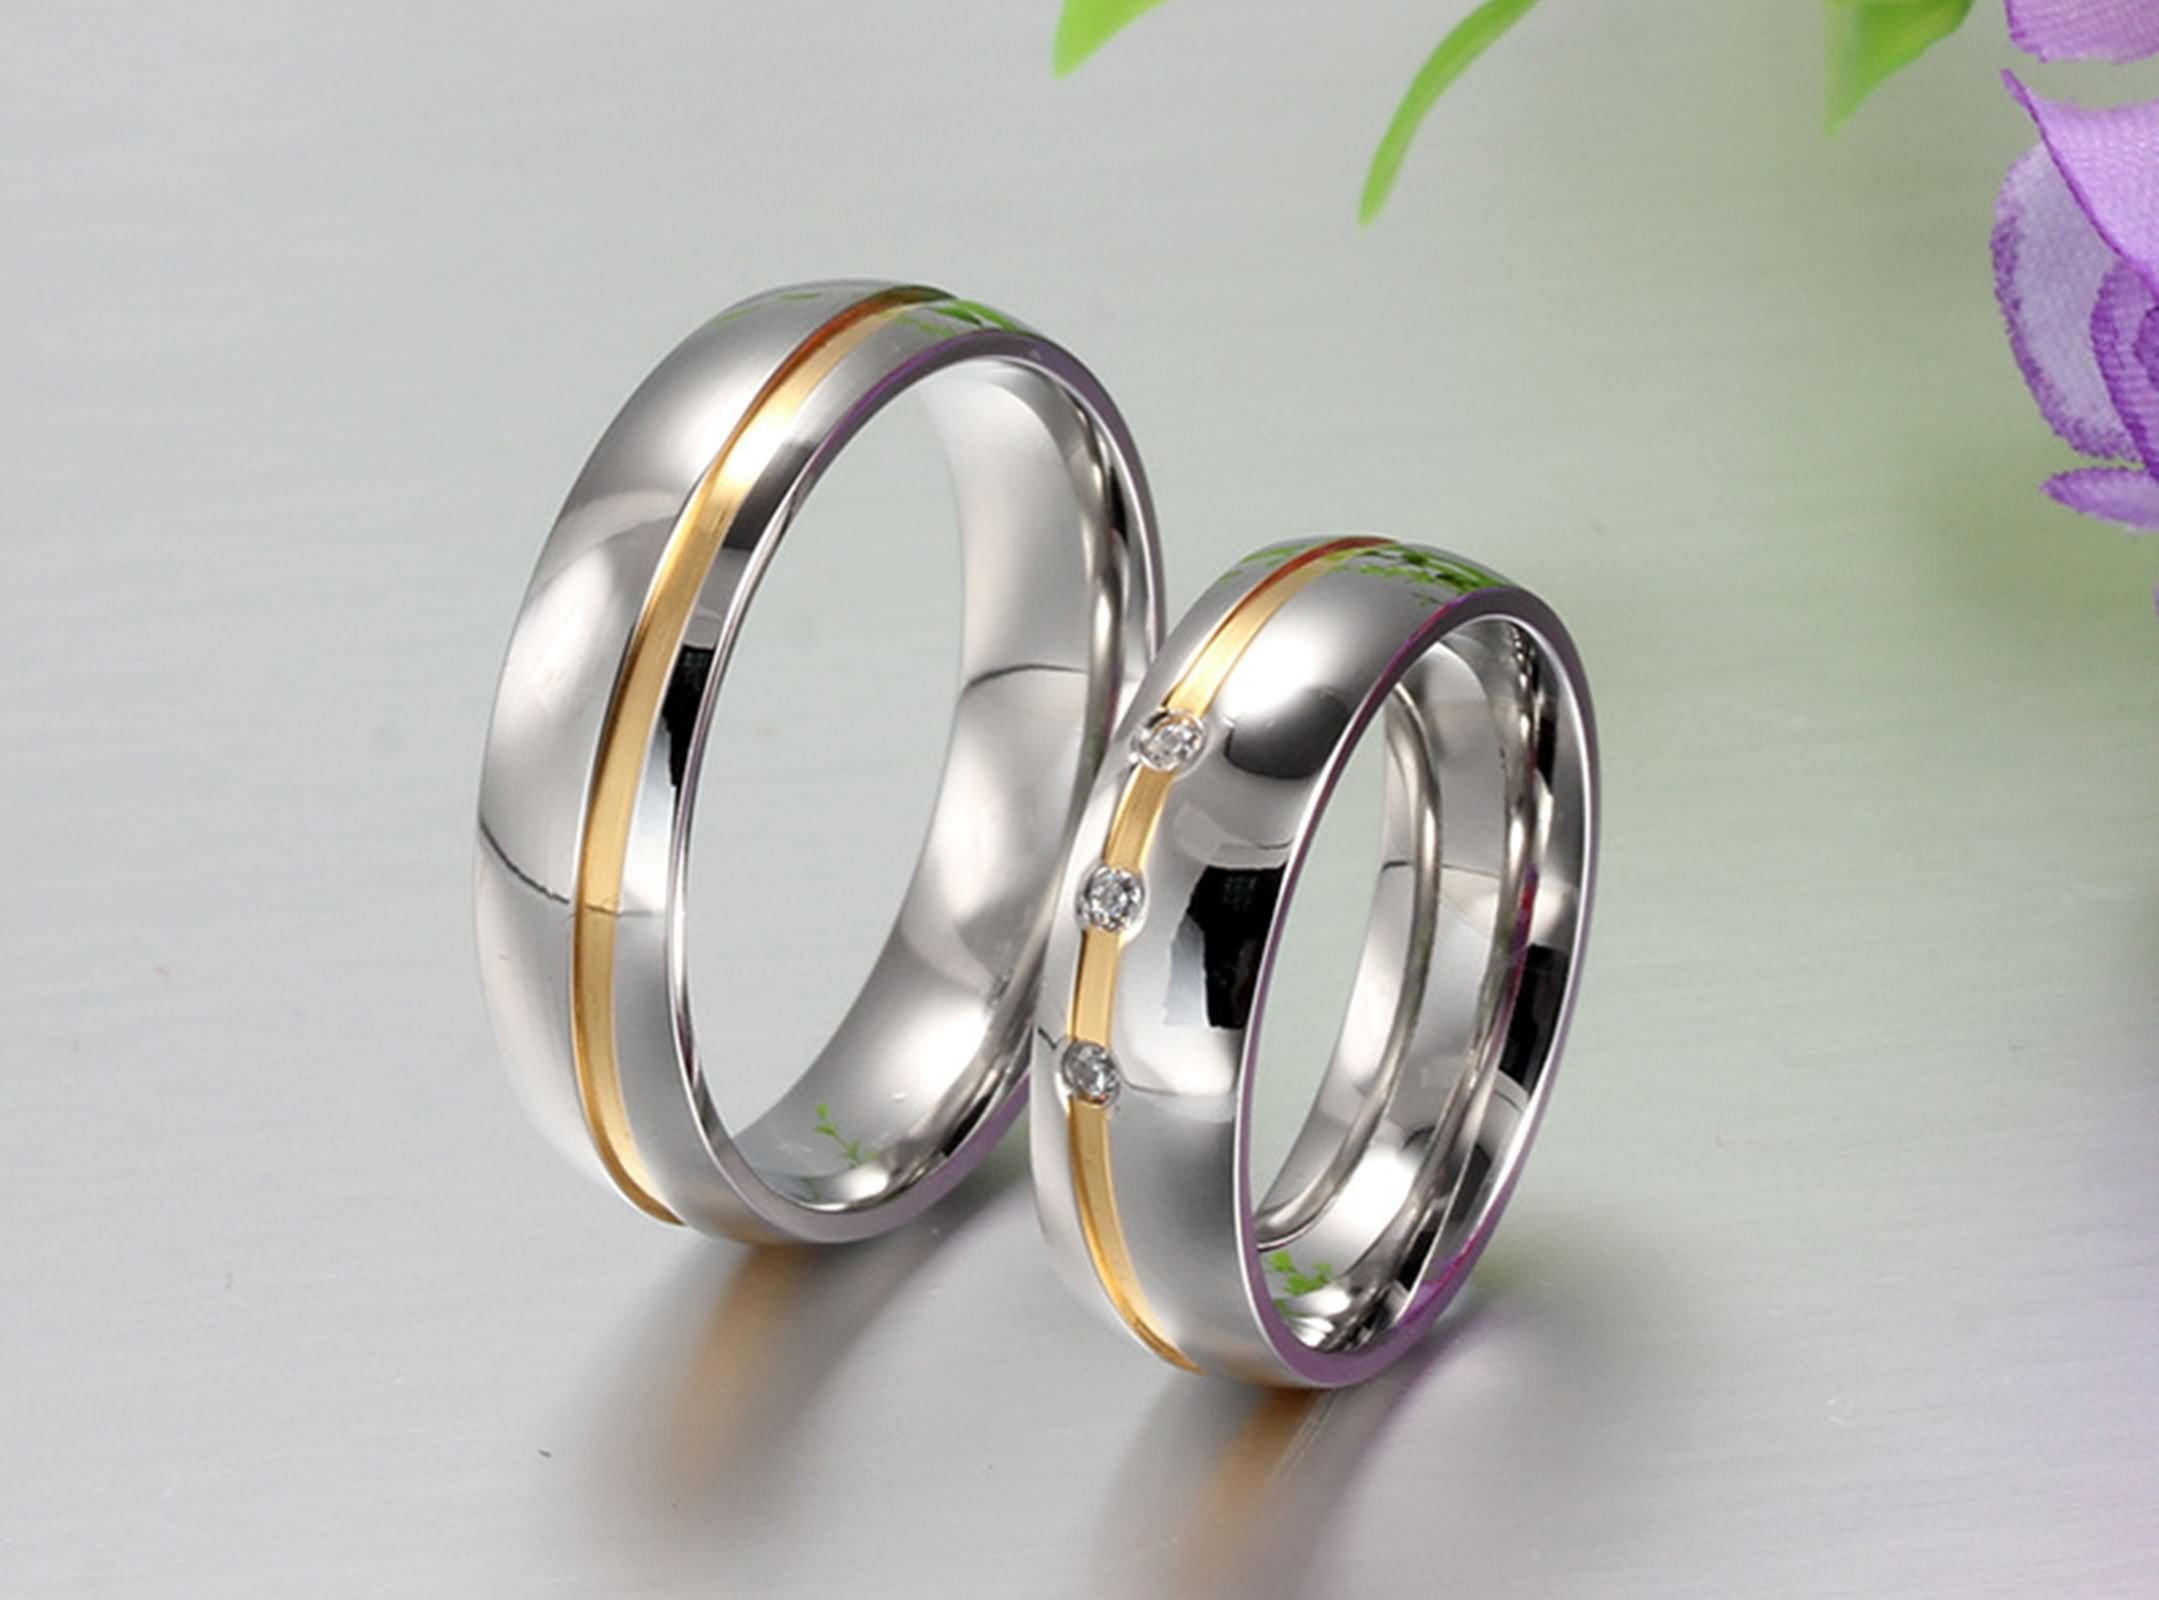 Beydodo Titanium Rings Set for Women Stainless Steel Ring Bands Round CZ Women Size 7 & Men Size 12 by Beydodo (Image #3)